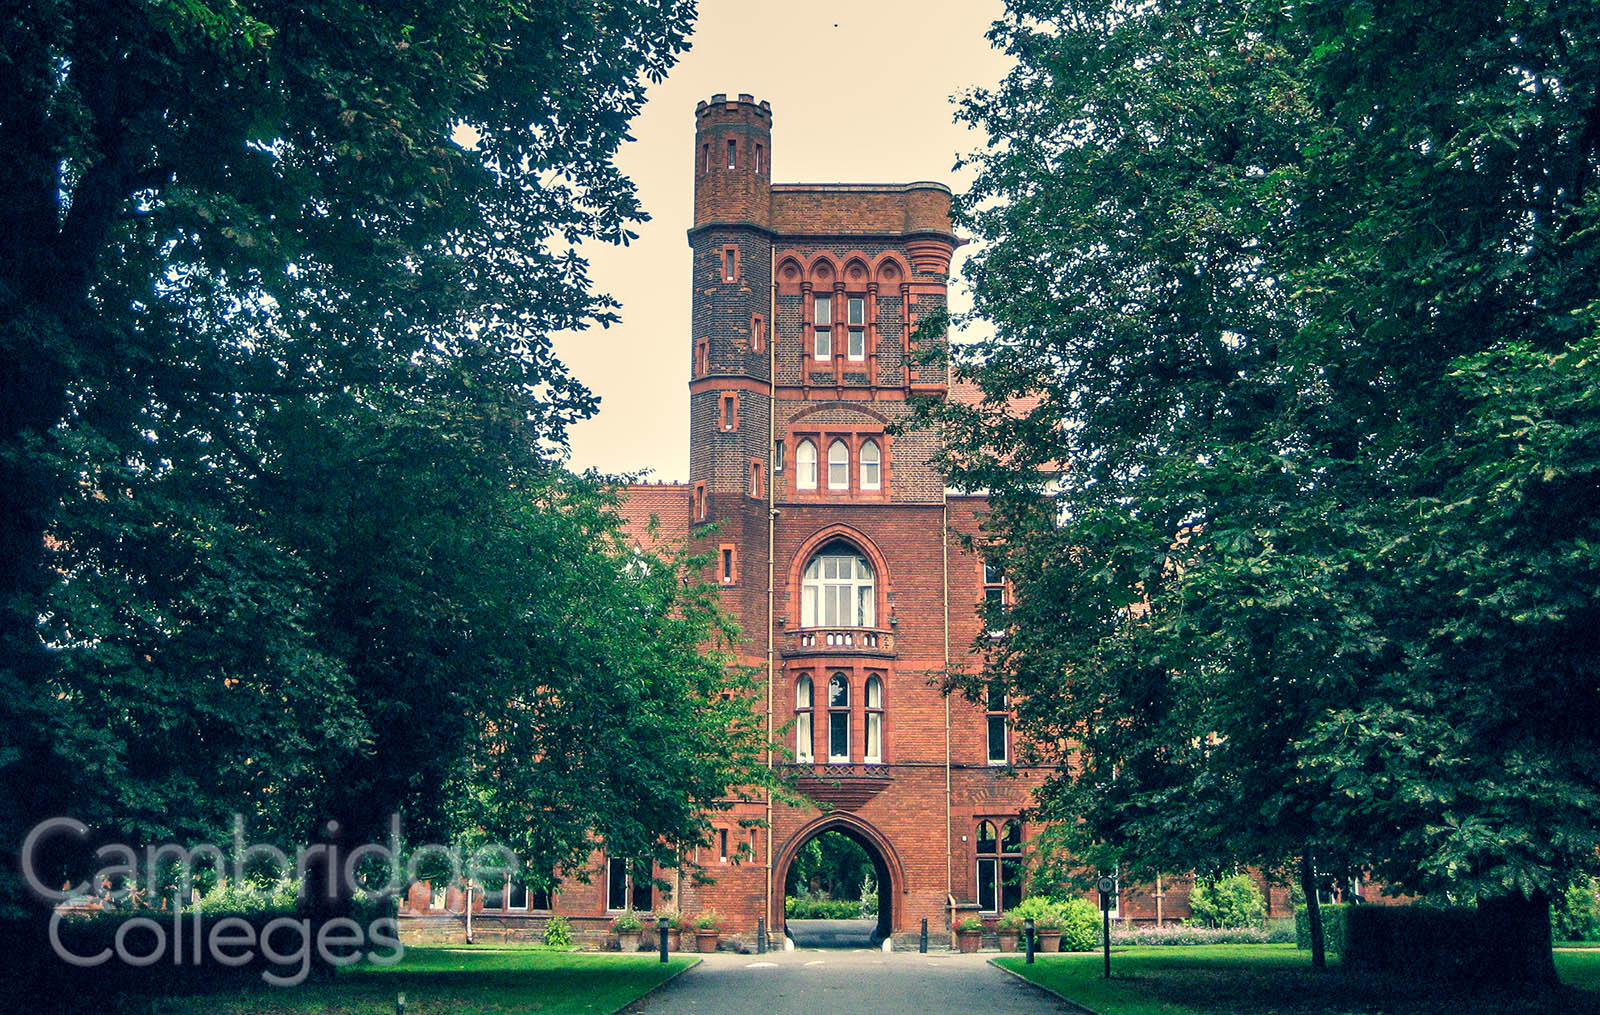 The main entrance to Girton College, viewed from Huntingdon road